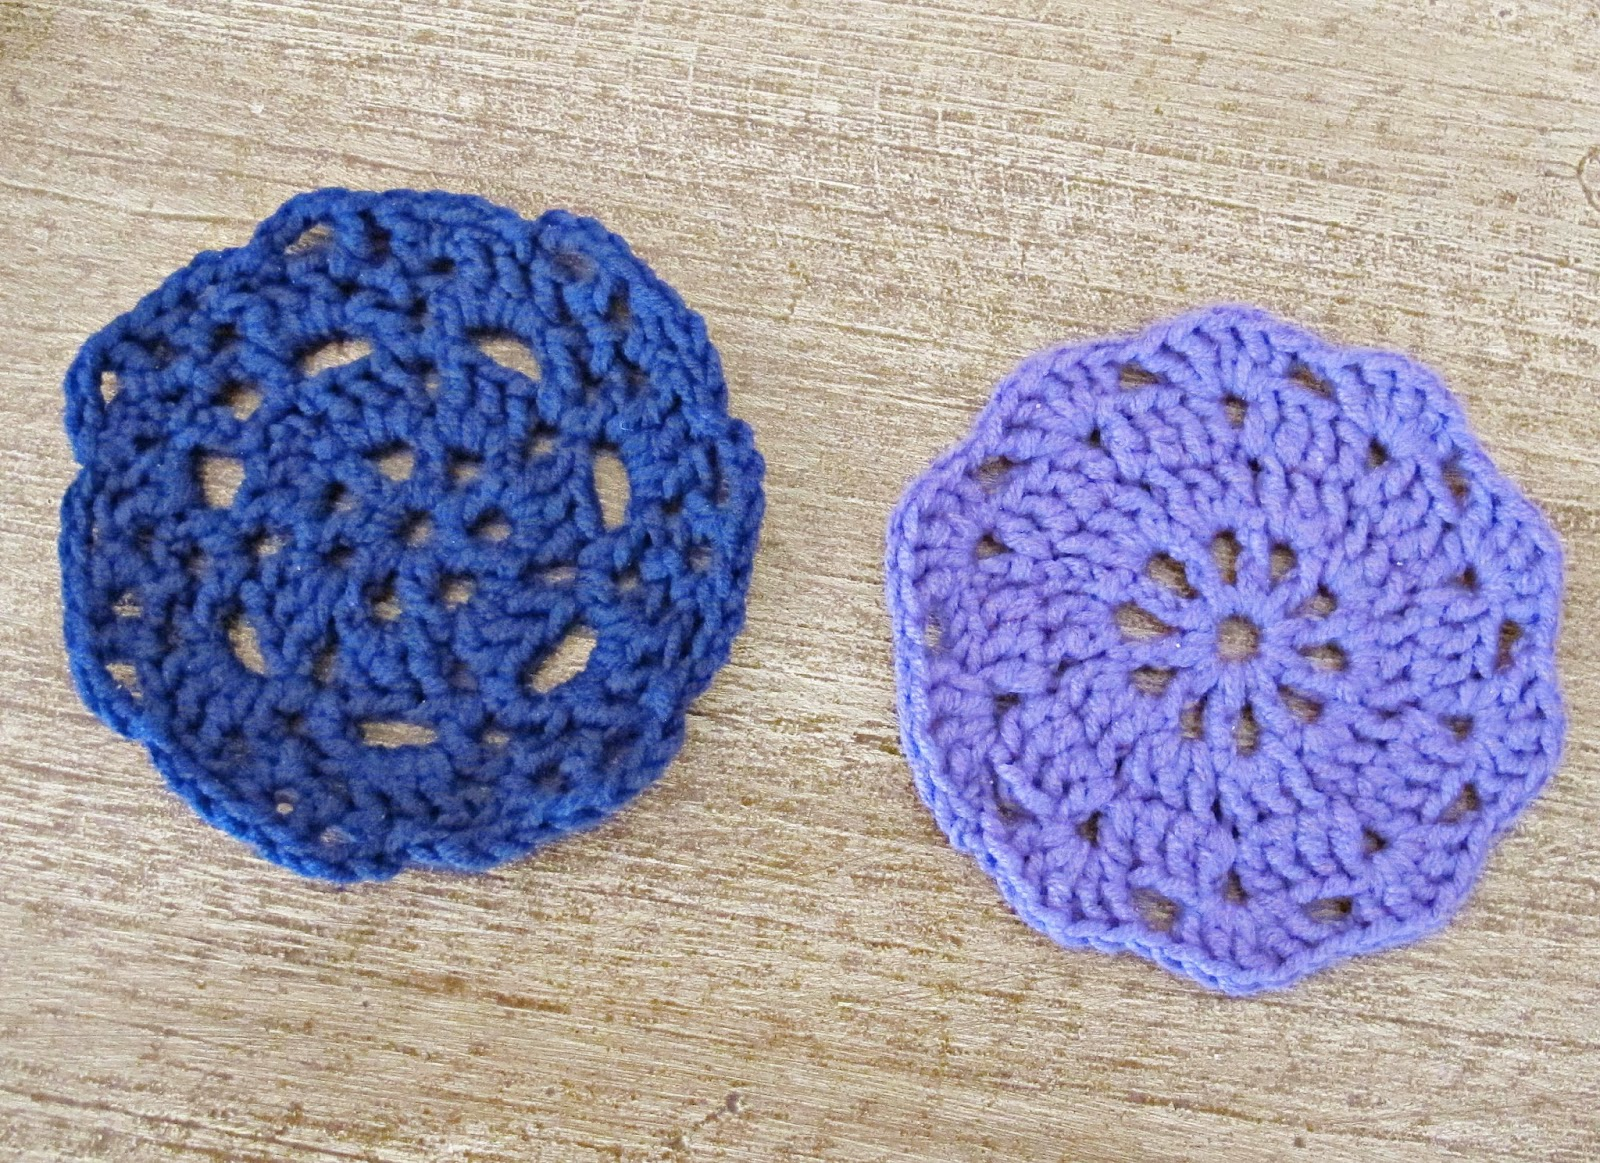 image crochet doilies coasters drinks crocheted moda vera beetle yarn navy blue purple mauve